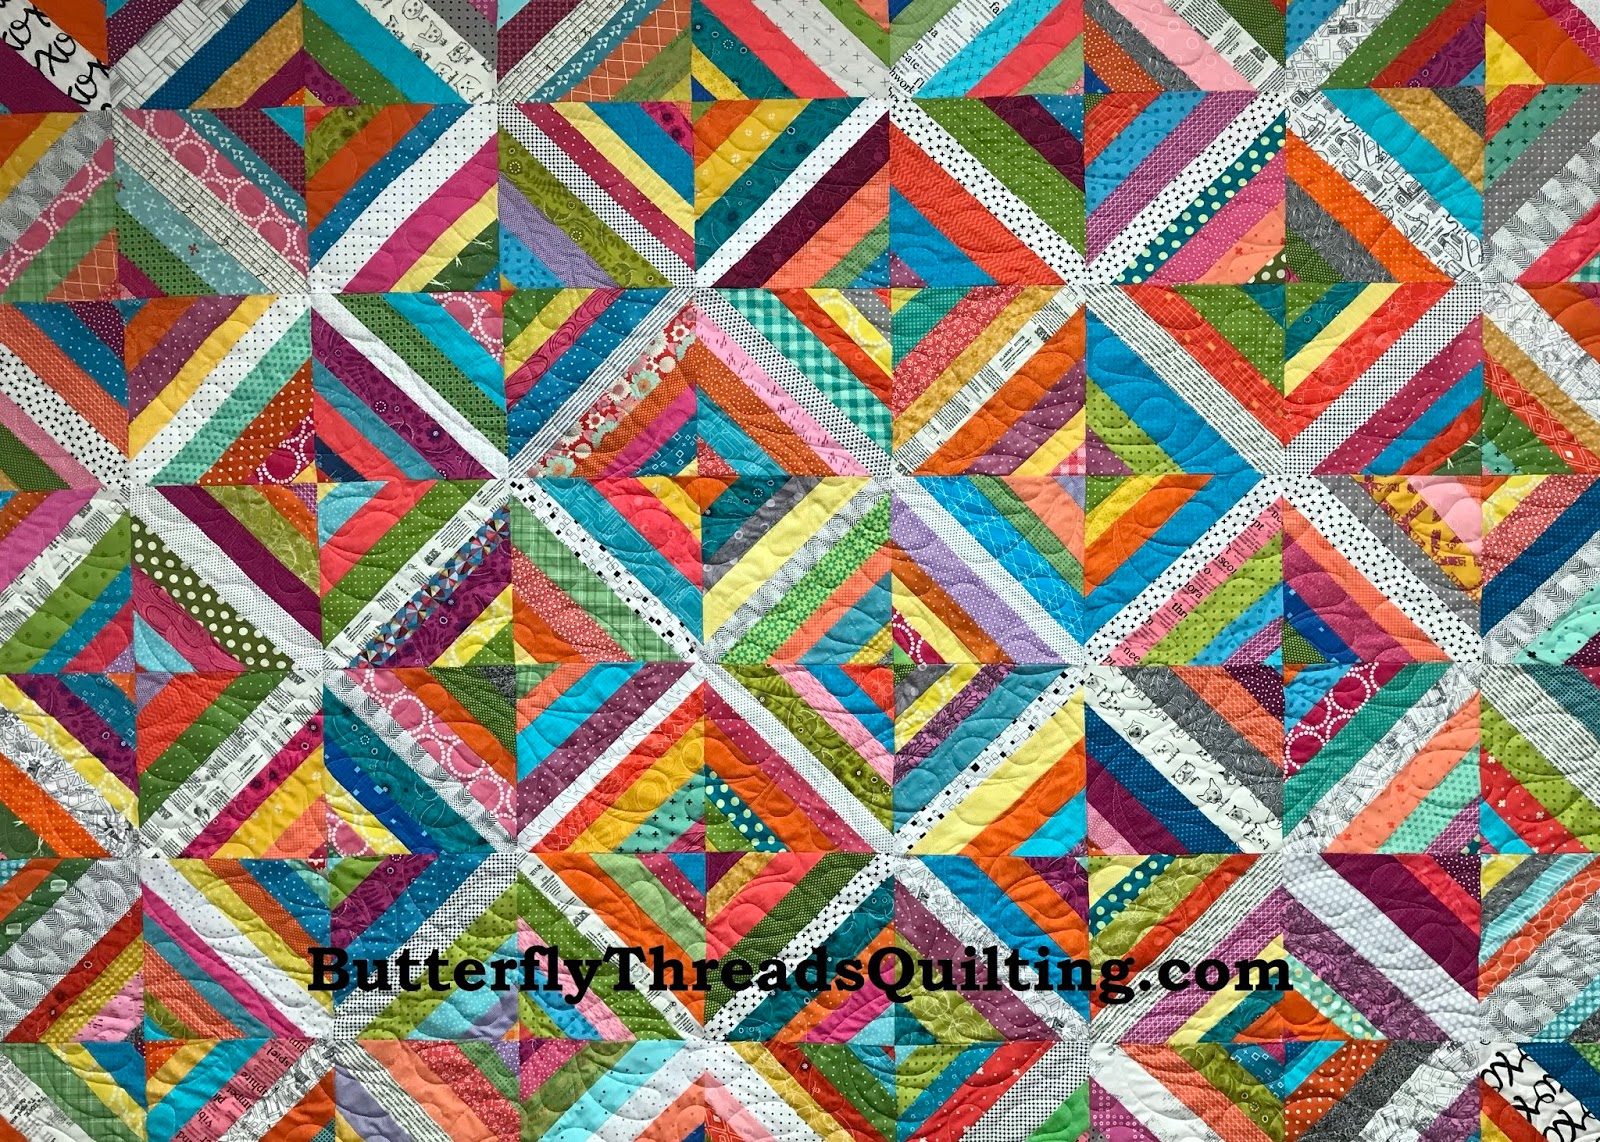 Butterfly Threads Longarm Quilting Designs,Simple Landscape Design Drawings